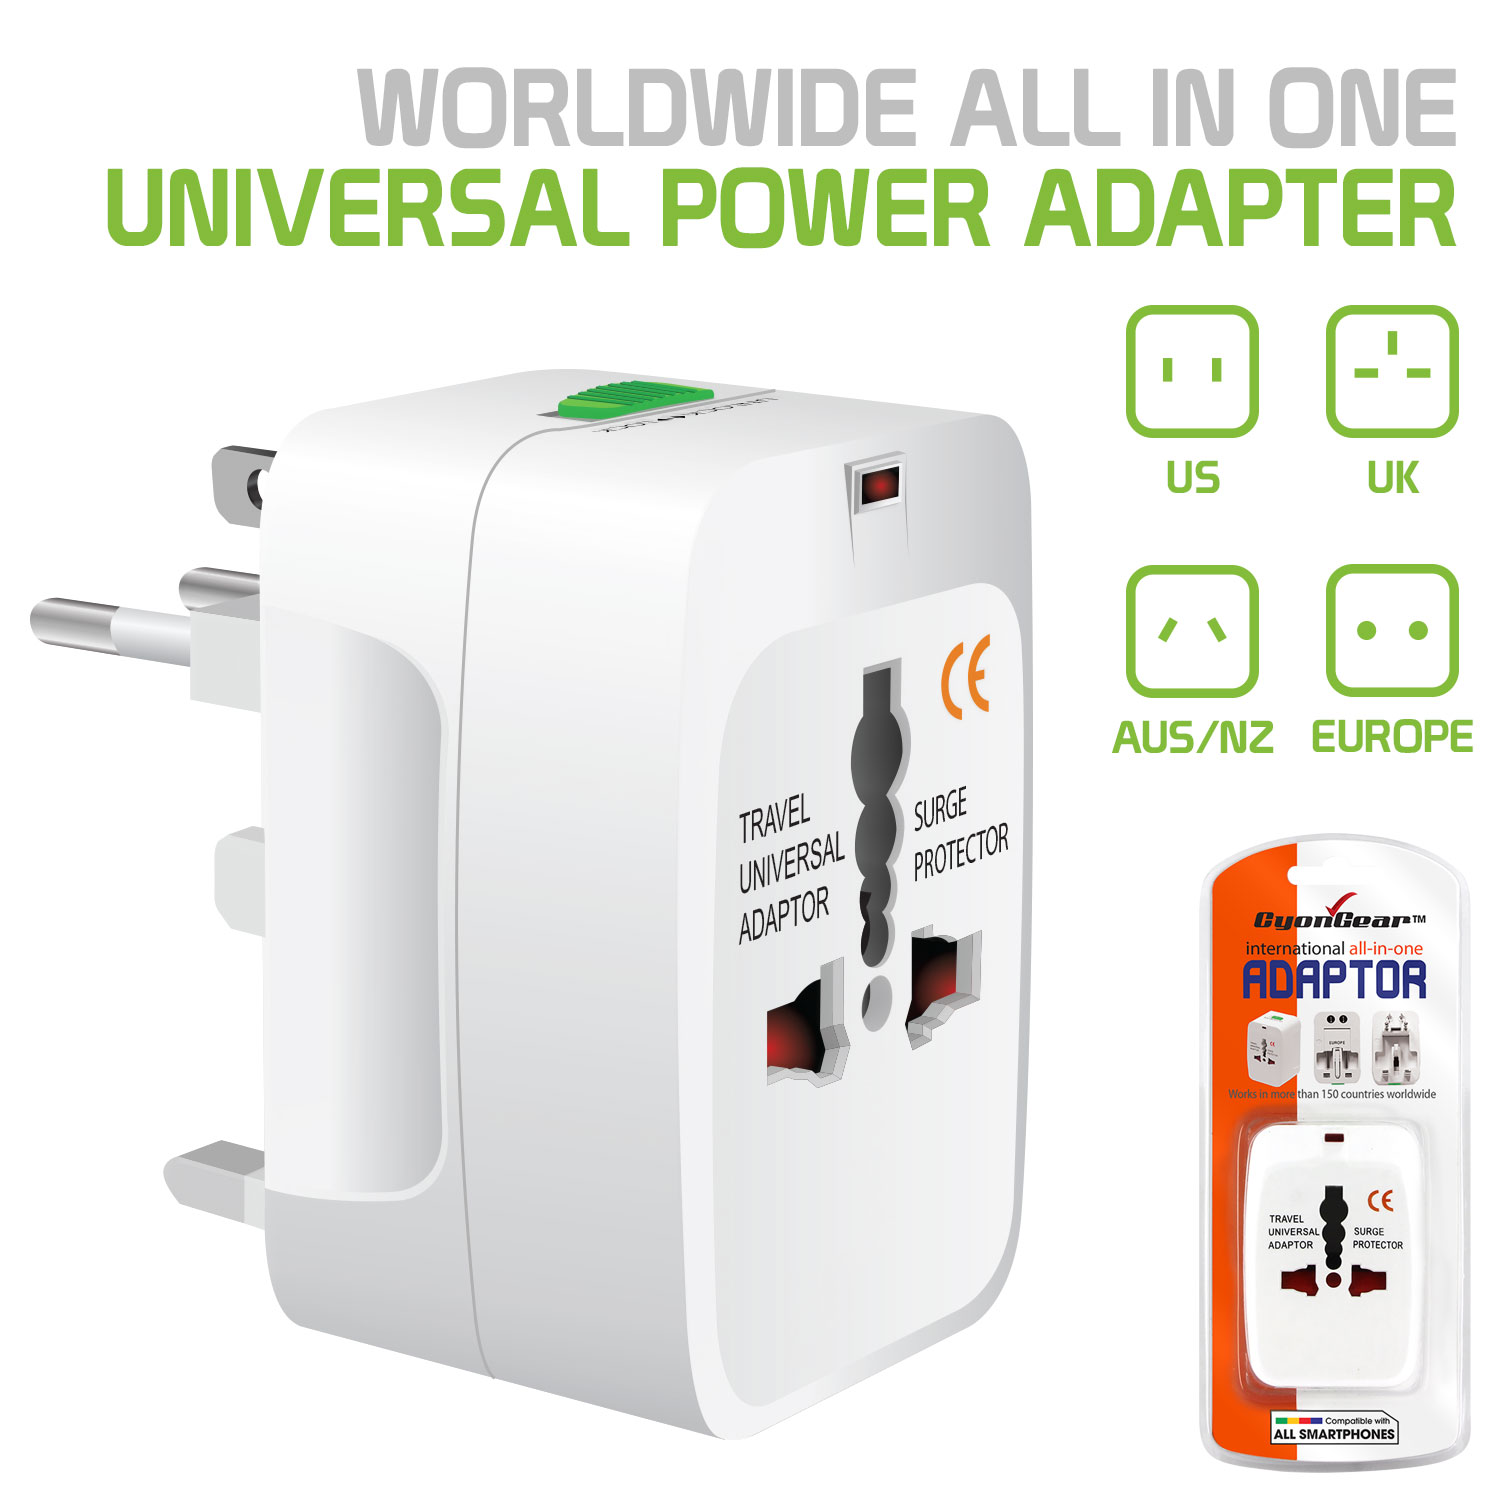 Cellet International Travel Power Adapter, Compact All-in-One Durable Power Adapter with Built-in Surge Protection, Shutter Safety and Power Light Indicator